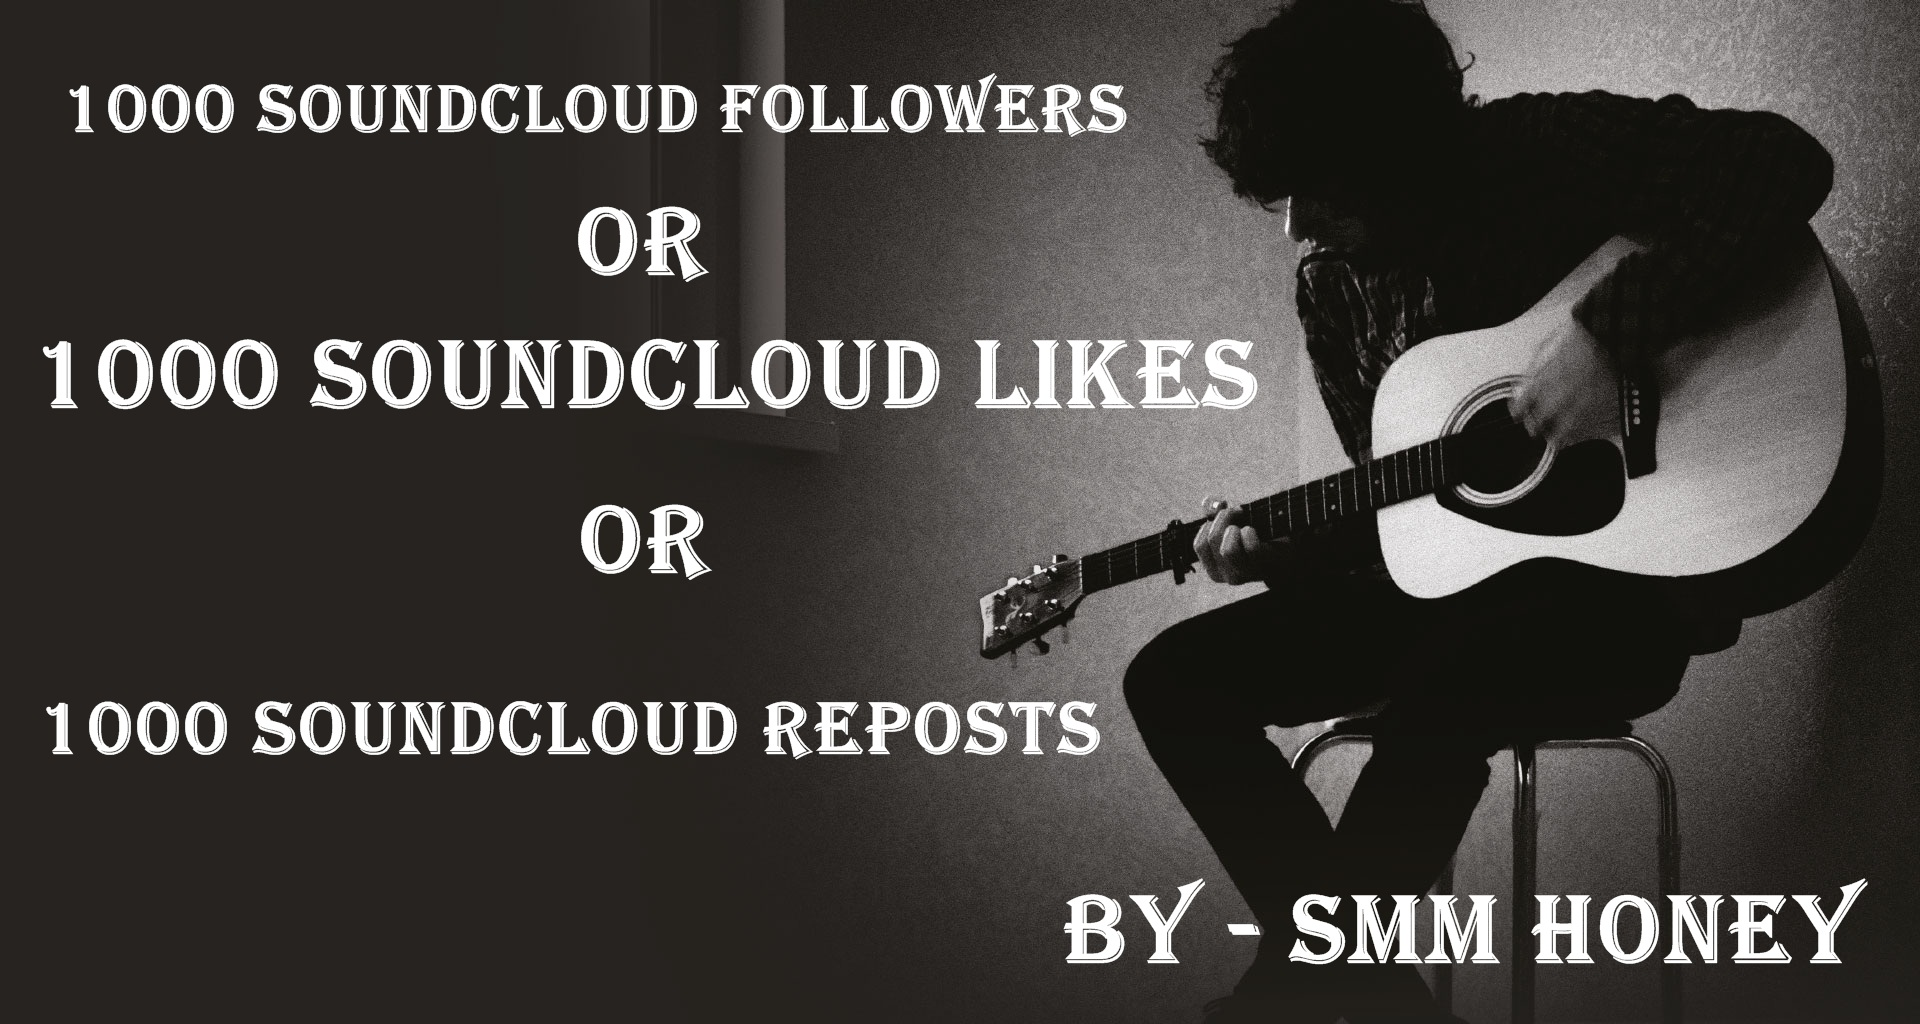 Give u 1000+ SOUND CLOUD followers or likes or reposts